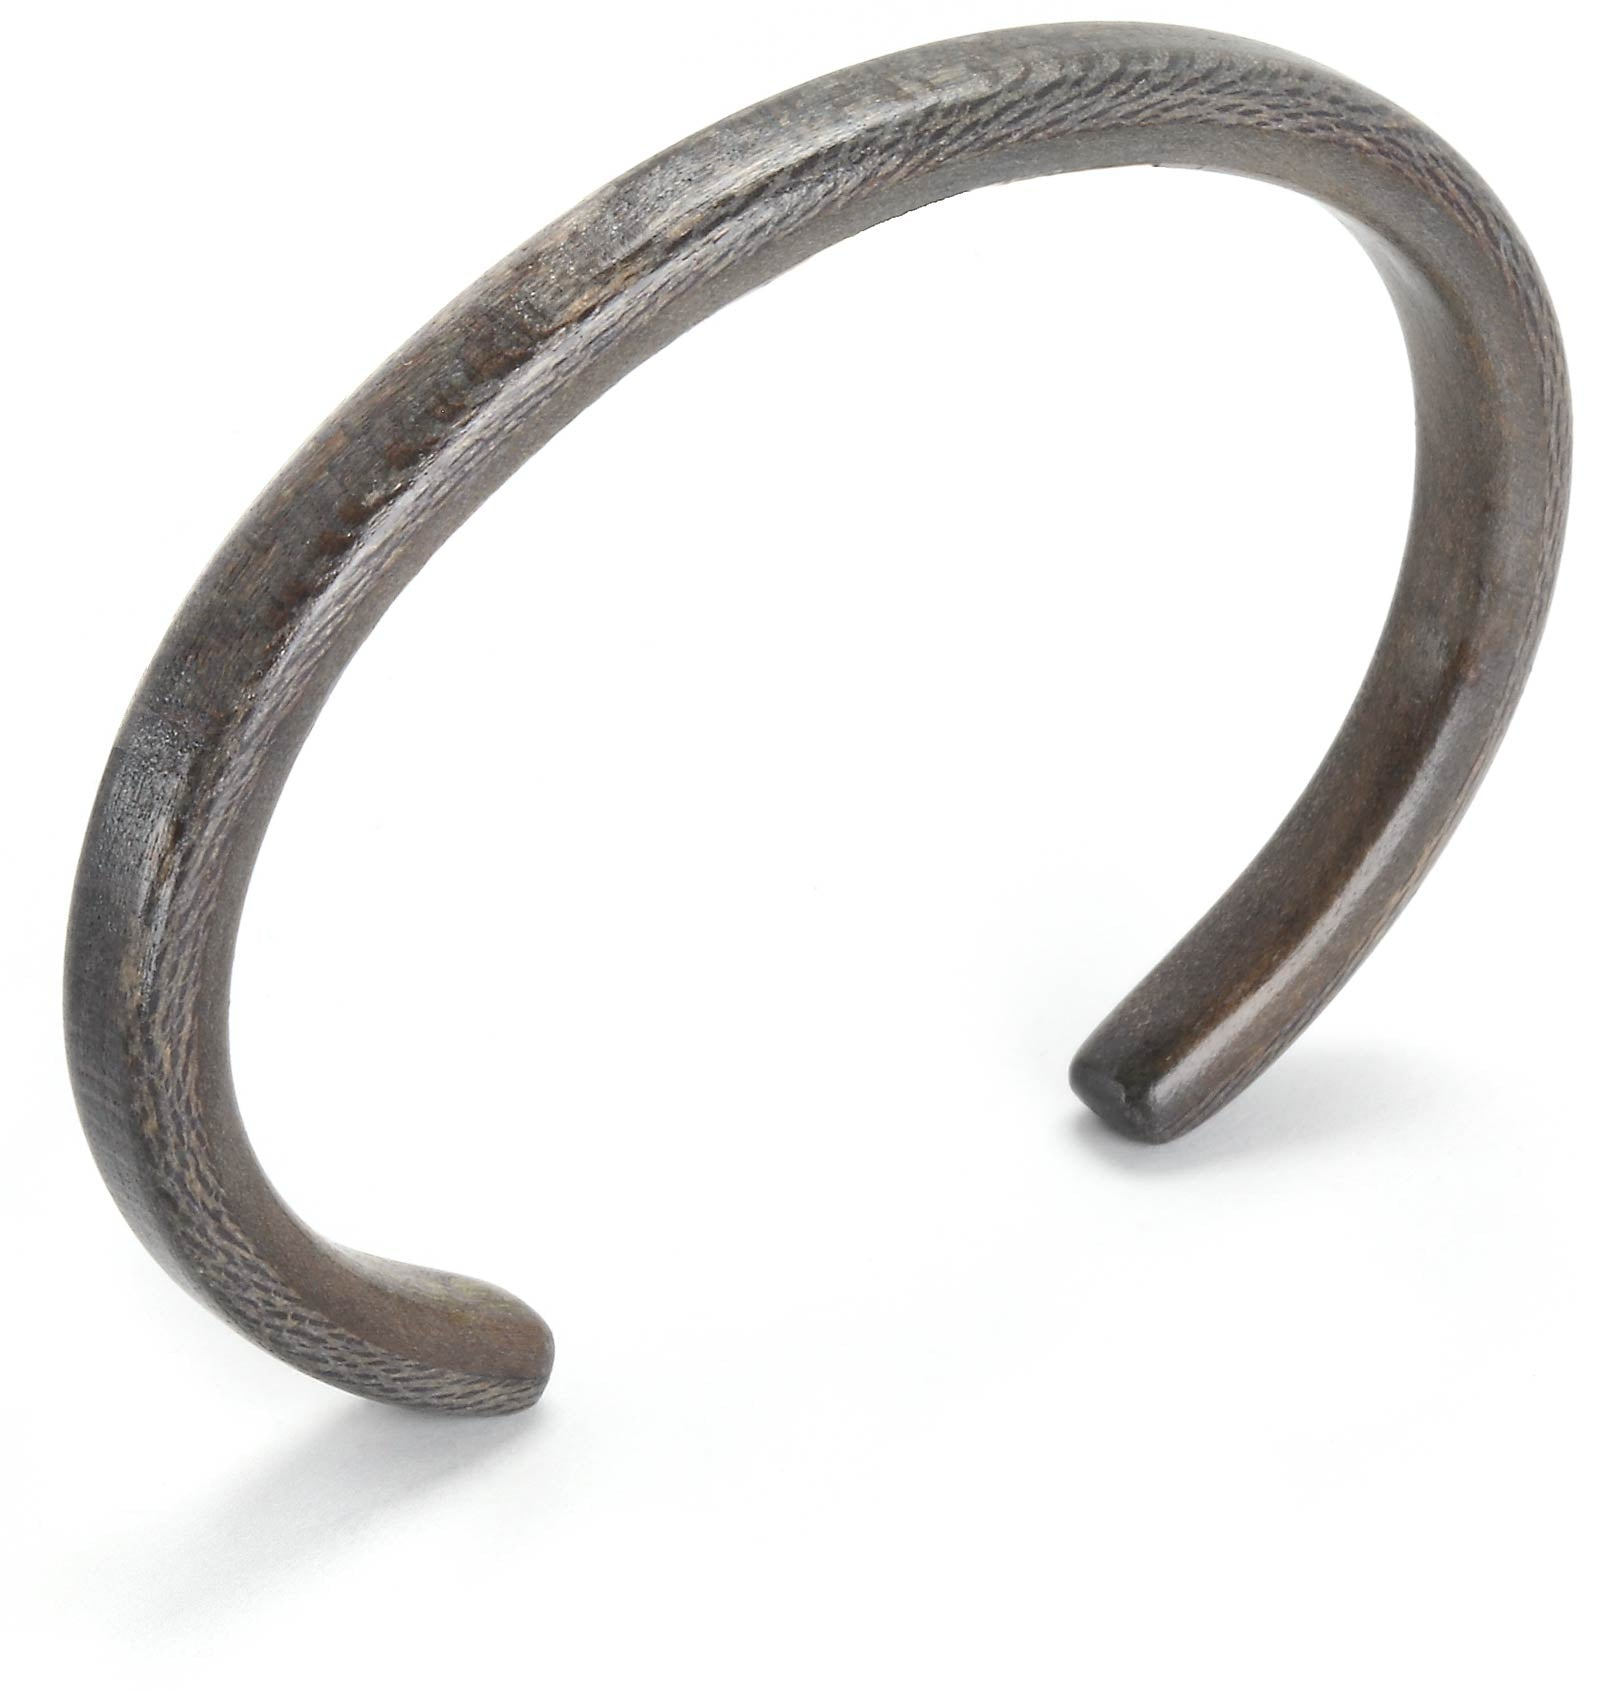 Steam bent thin grey sycamore wood bracelet.